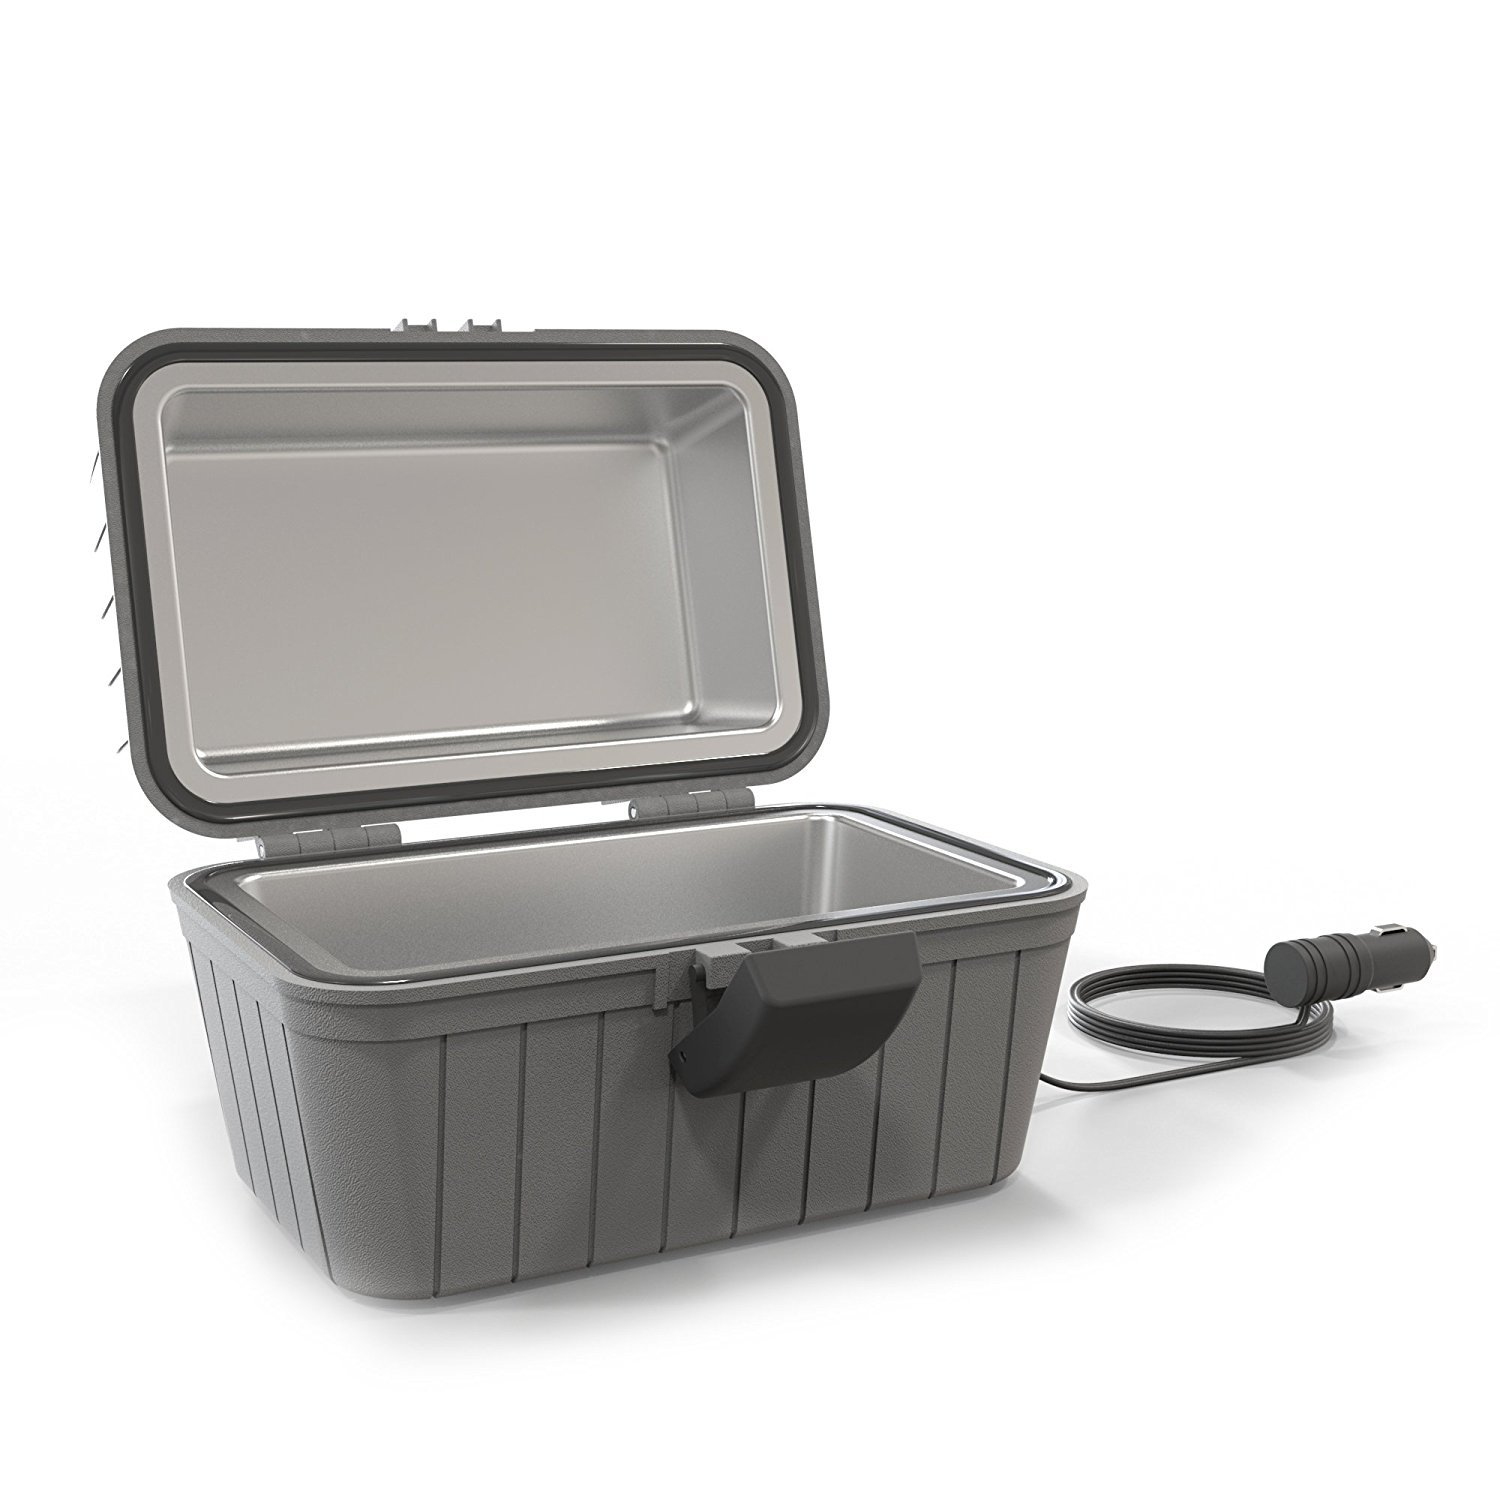 Gideon Heated Electric Lunch Box 12-Volt Portable Stove for Car, Truck, Camping, Etc. - Enjoy Hot Delicious Meals by Gideon